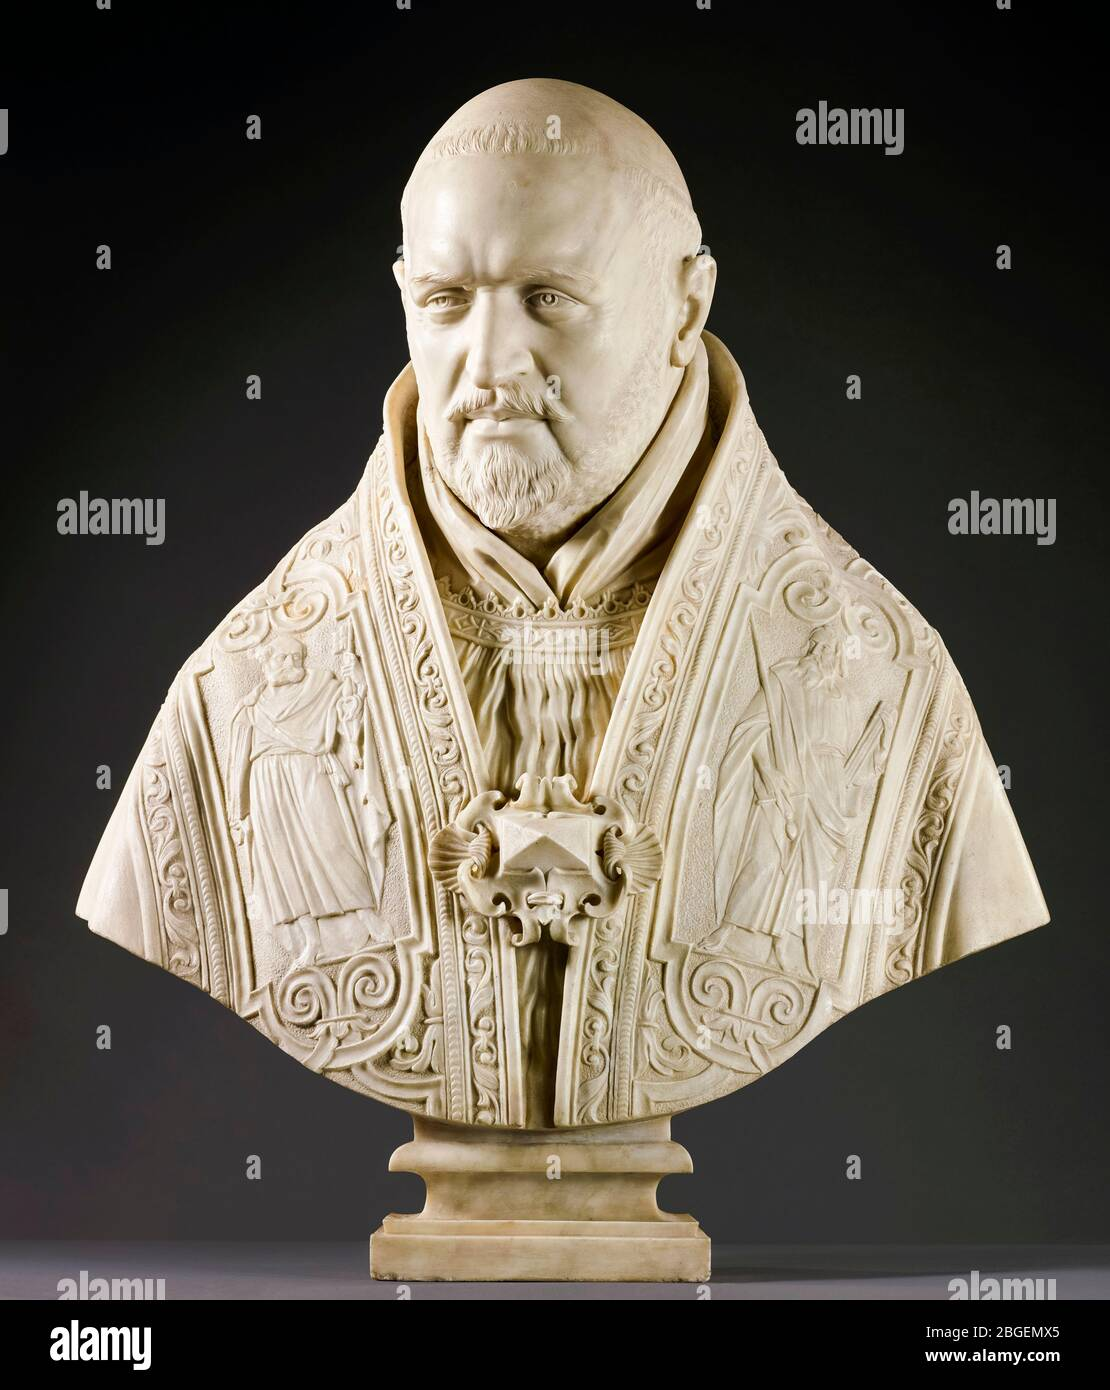 Pope Paul V, bust, marble sculpture by Gian Lorenzo Bernini, 1621 Stock Photo